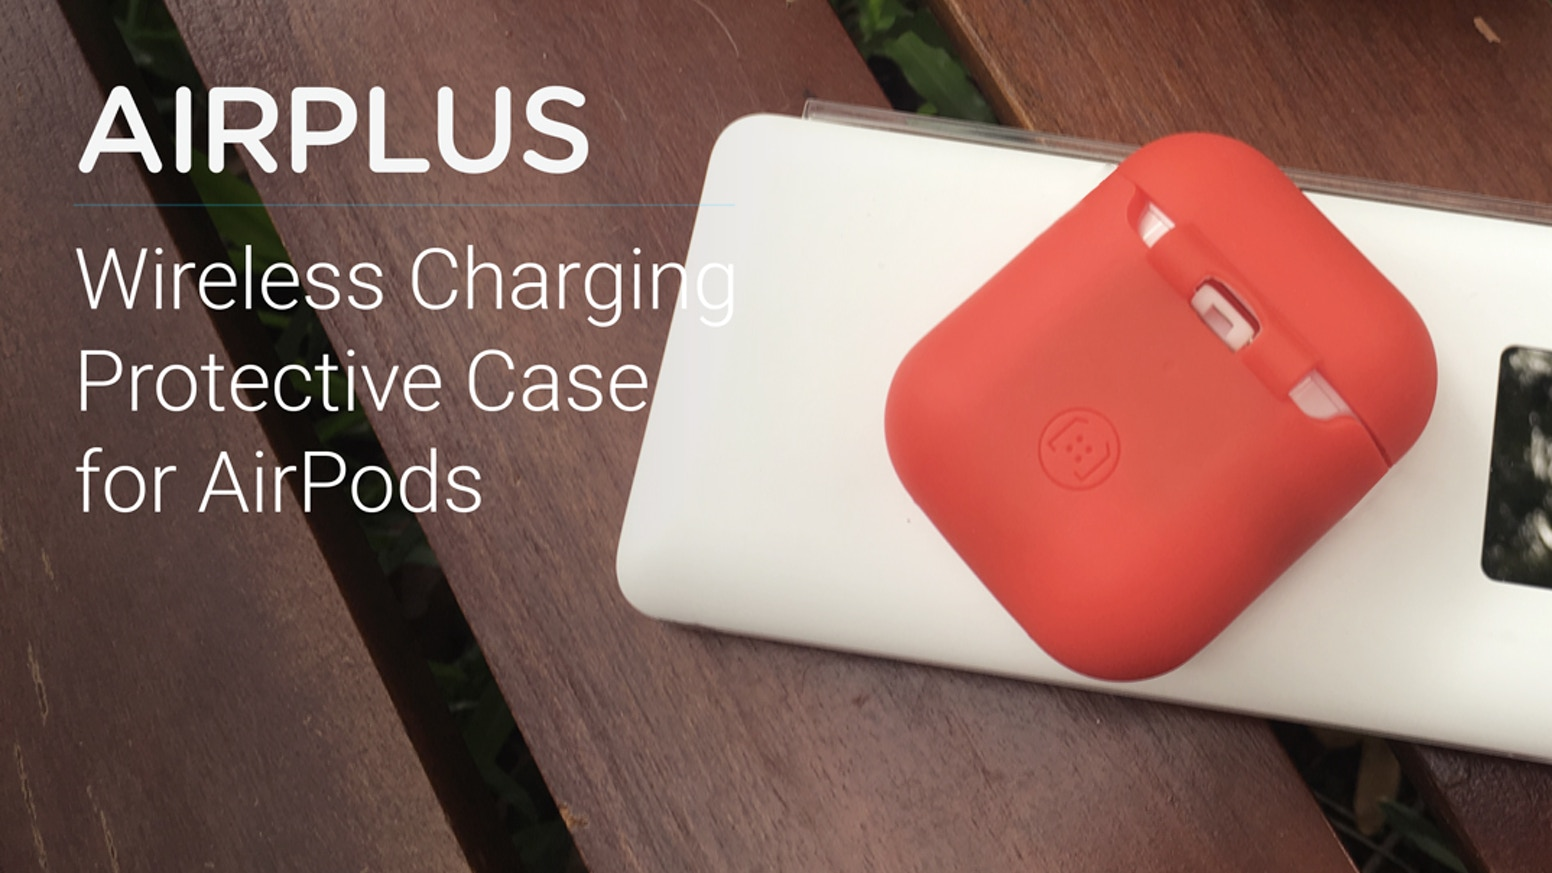 AirPlus - Wireless Charging Protective Case for AirPods